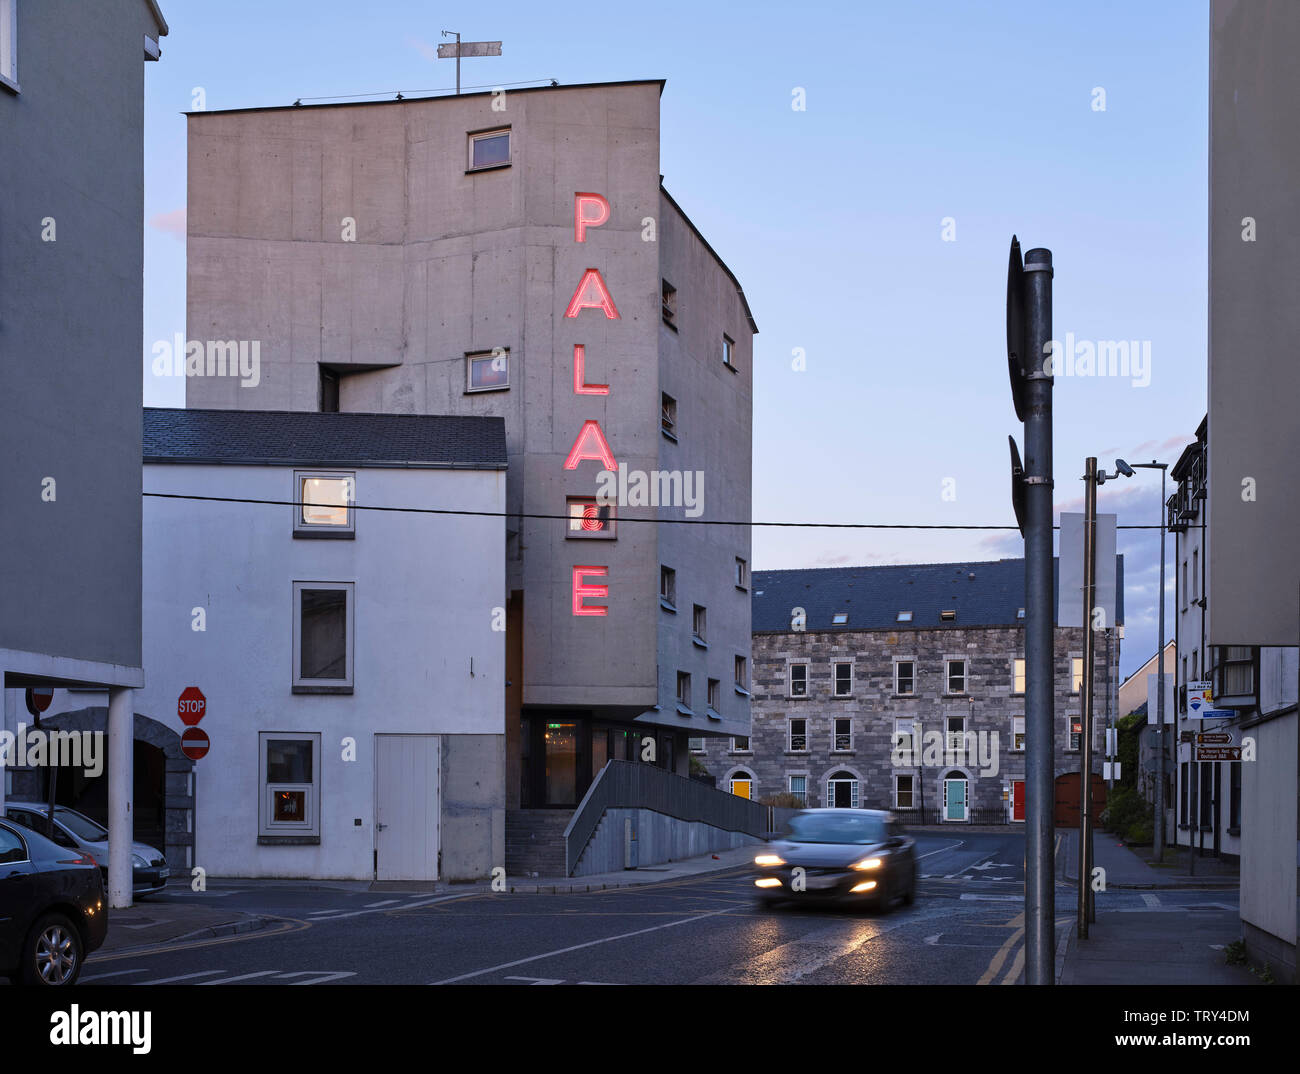 Dusk elevation from west. Pálás Cinema, Galway, Ireland. Architect: dePaor, 2017. - Stock Image